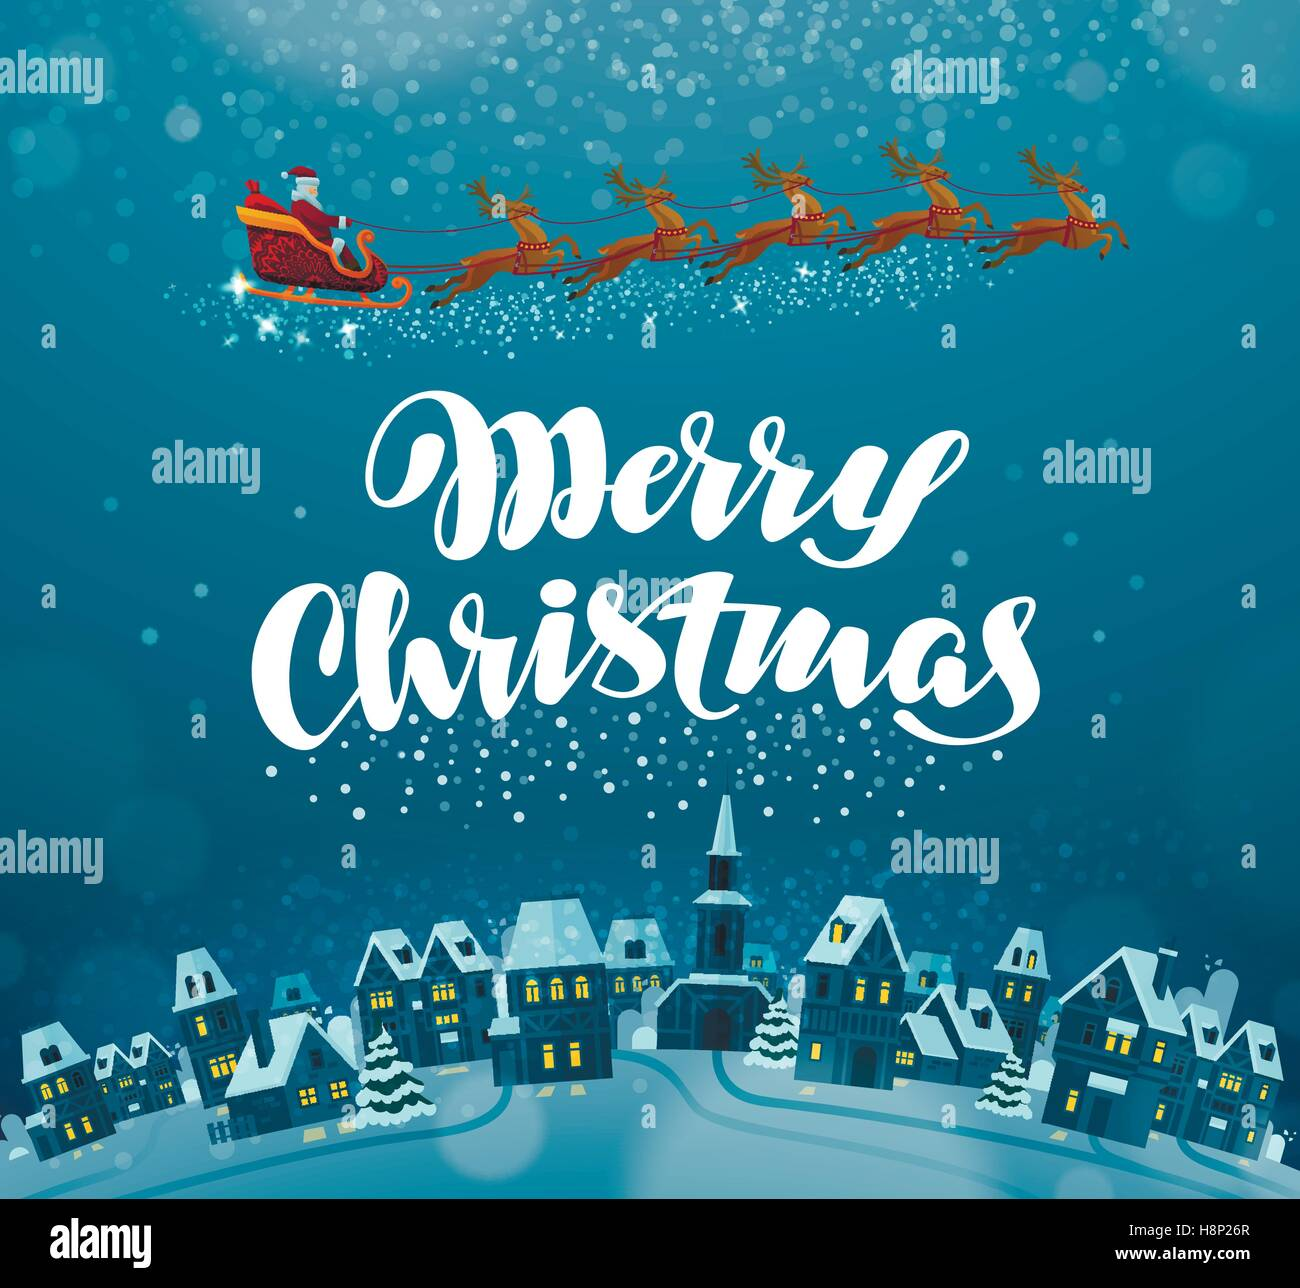 Merry Christmas Xmas Greeting Card Vector Illustration Stock Vector